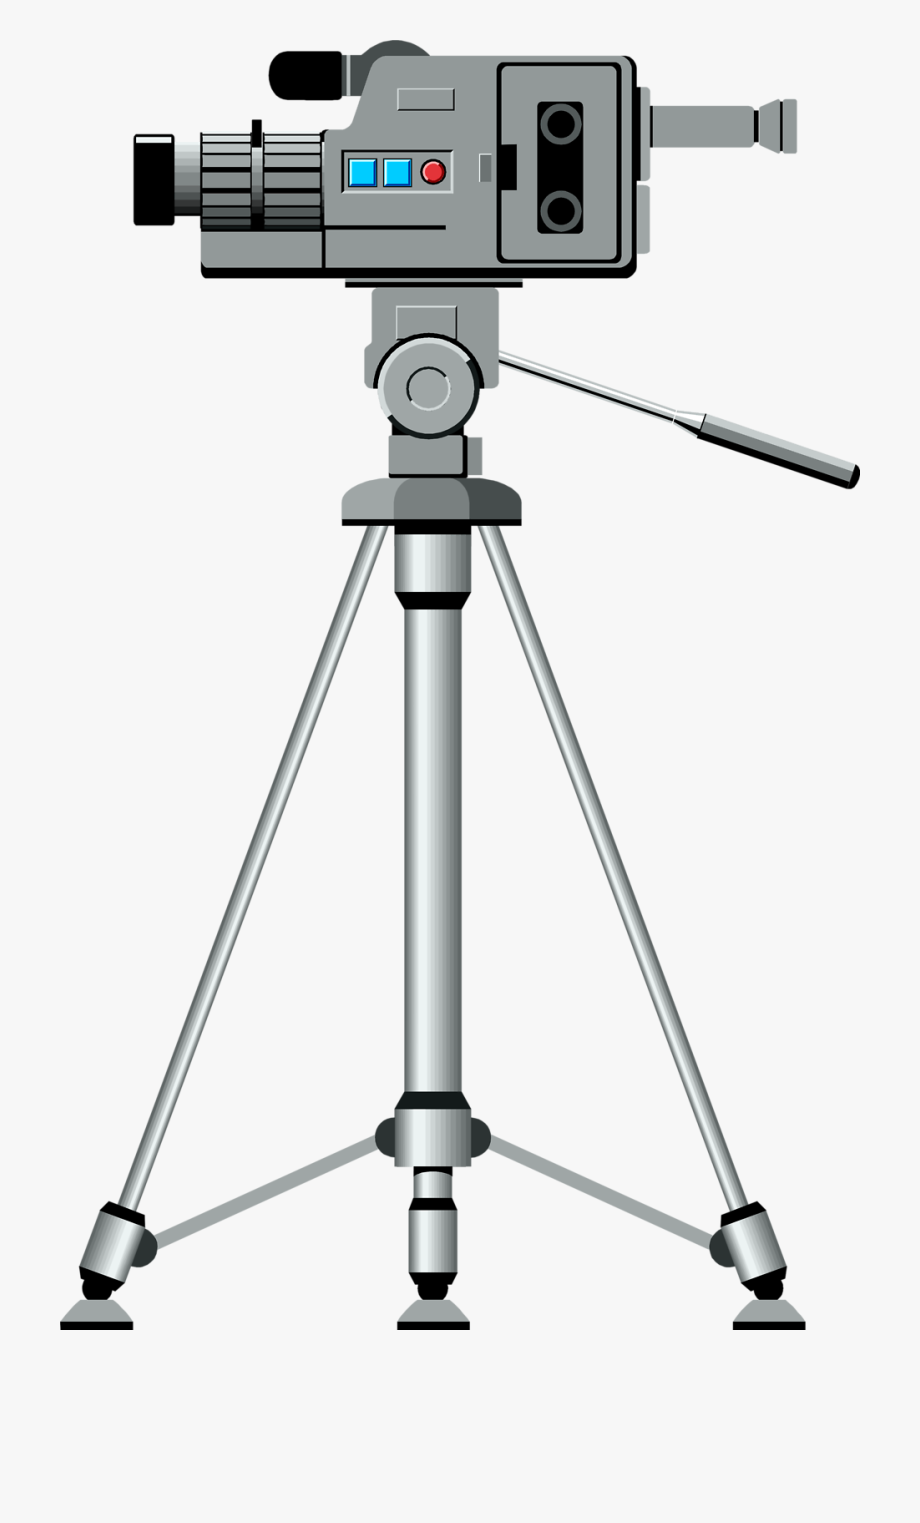 Free Download Of Video Camera On Tripod Icon Clipart.